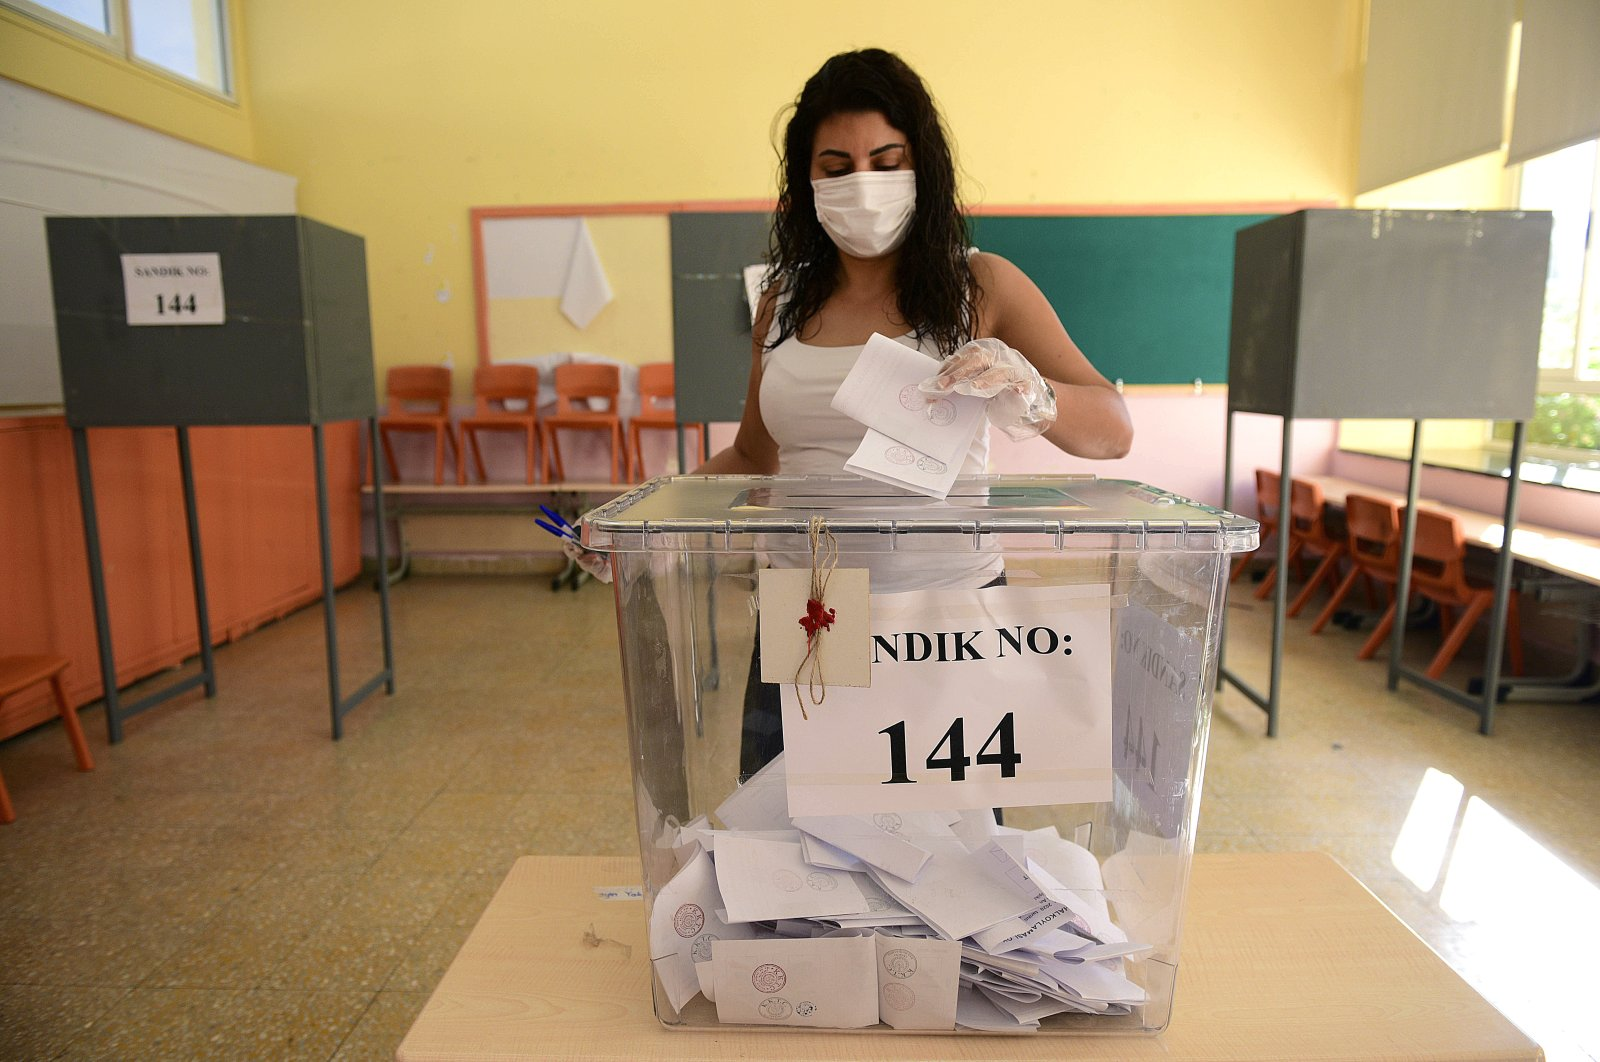 A woman casts her ballot at a polling station during the Turkish Cypriots election for a new leader in the Turkish occupied area in the north part of the divided capital Nicosia, Cyprus, Oct. 11, 2020. (AP)